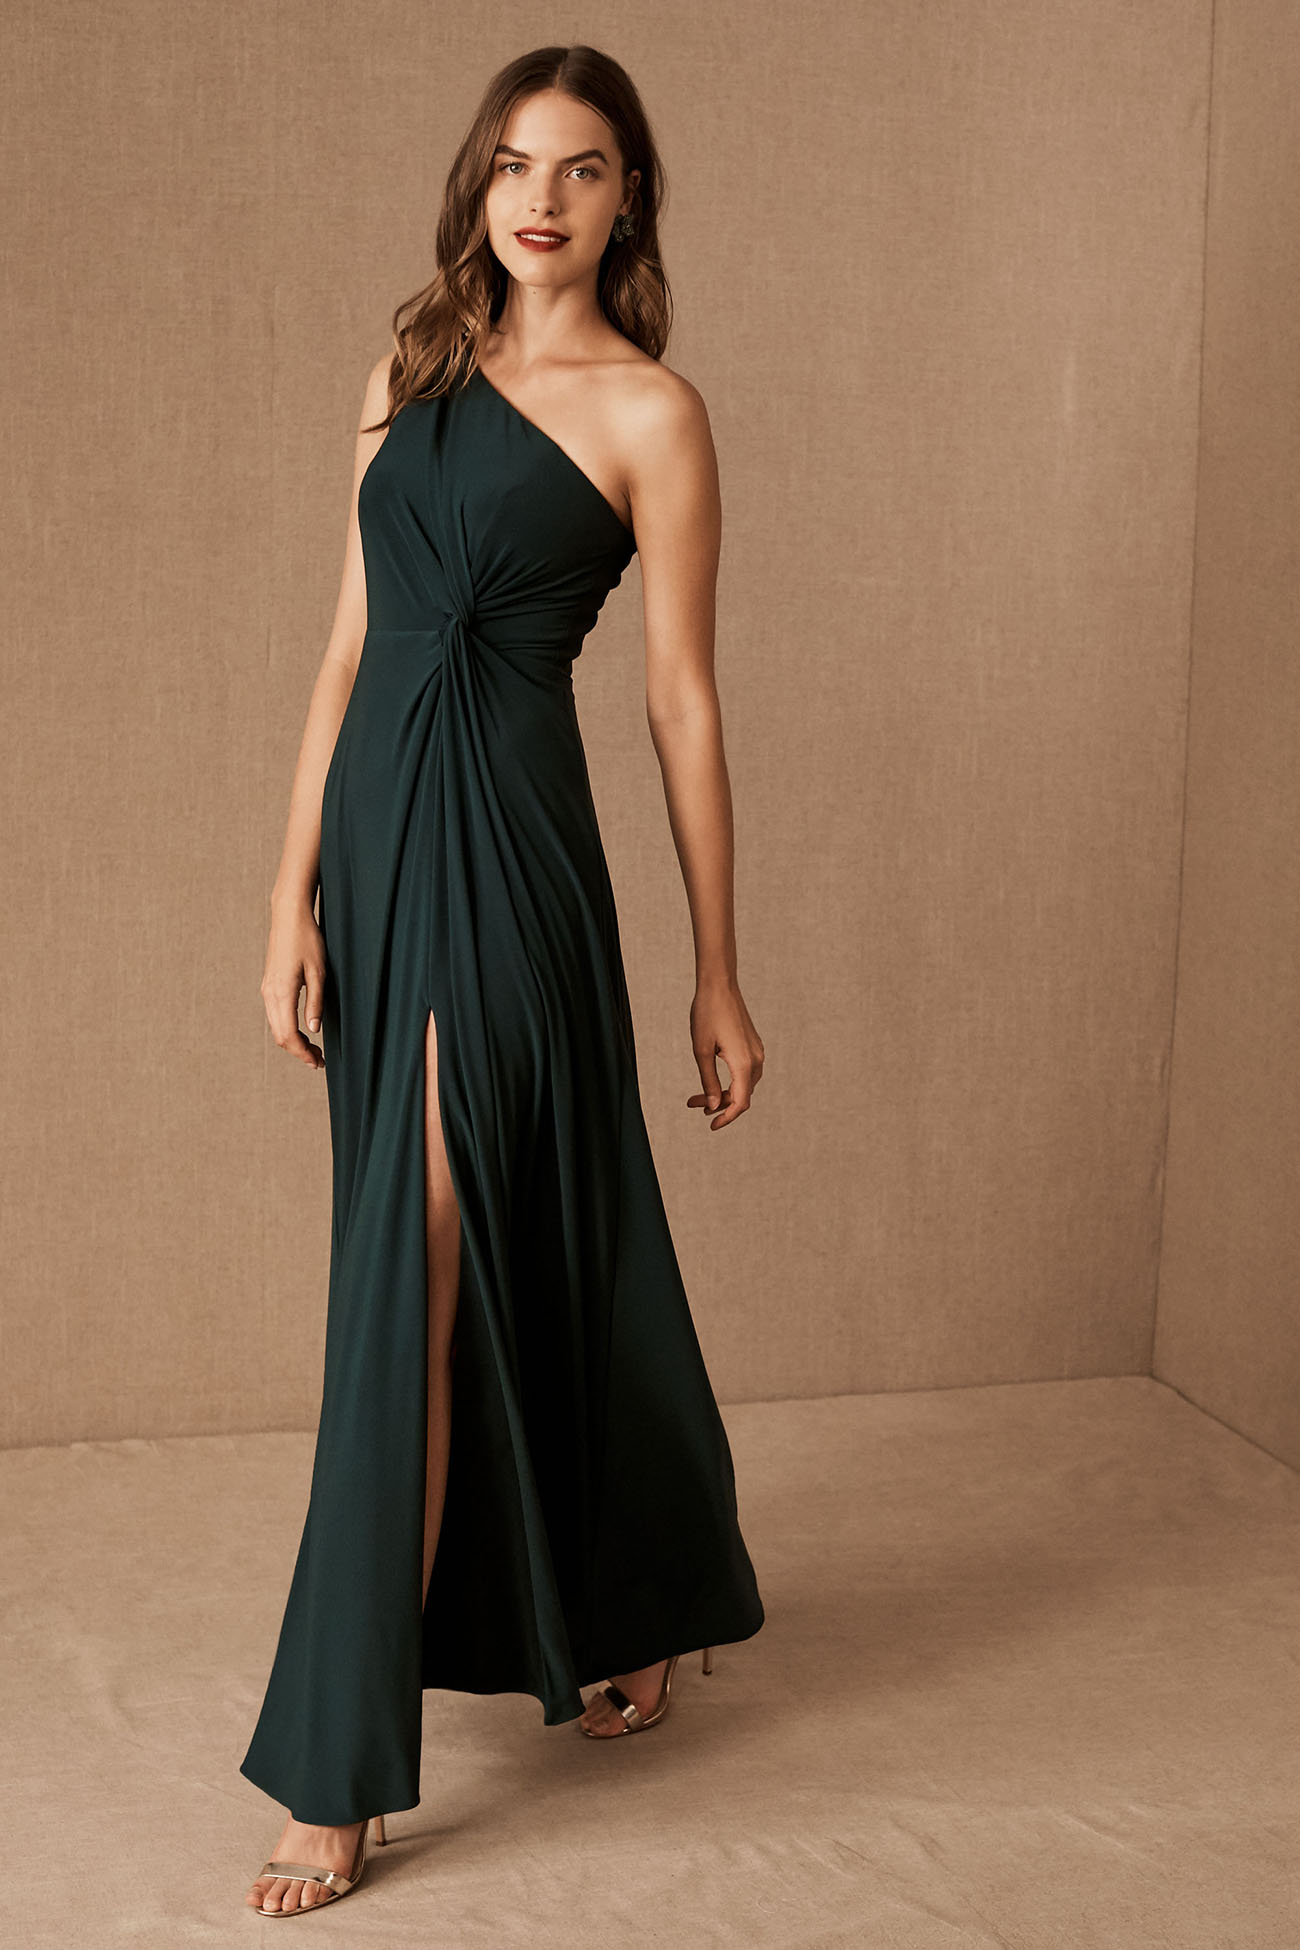 Forest Green Bridesmaid Dress